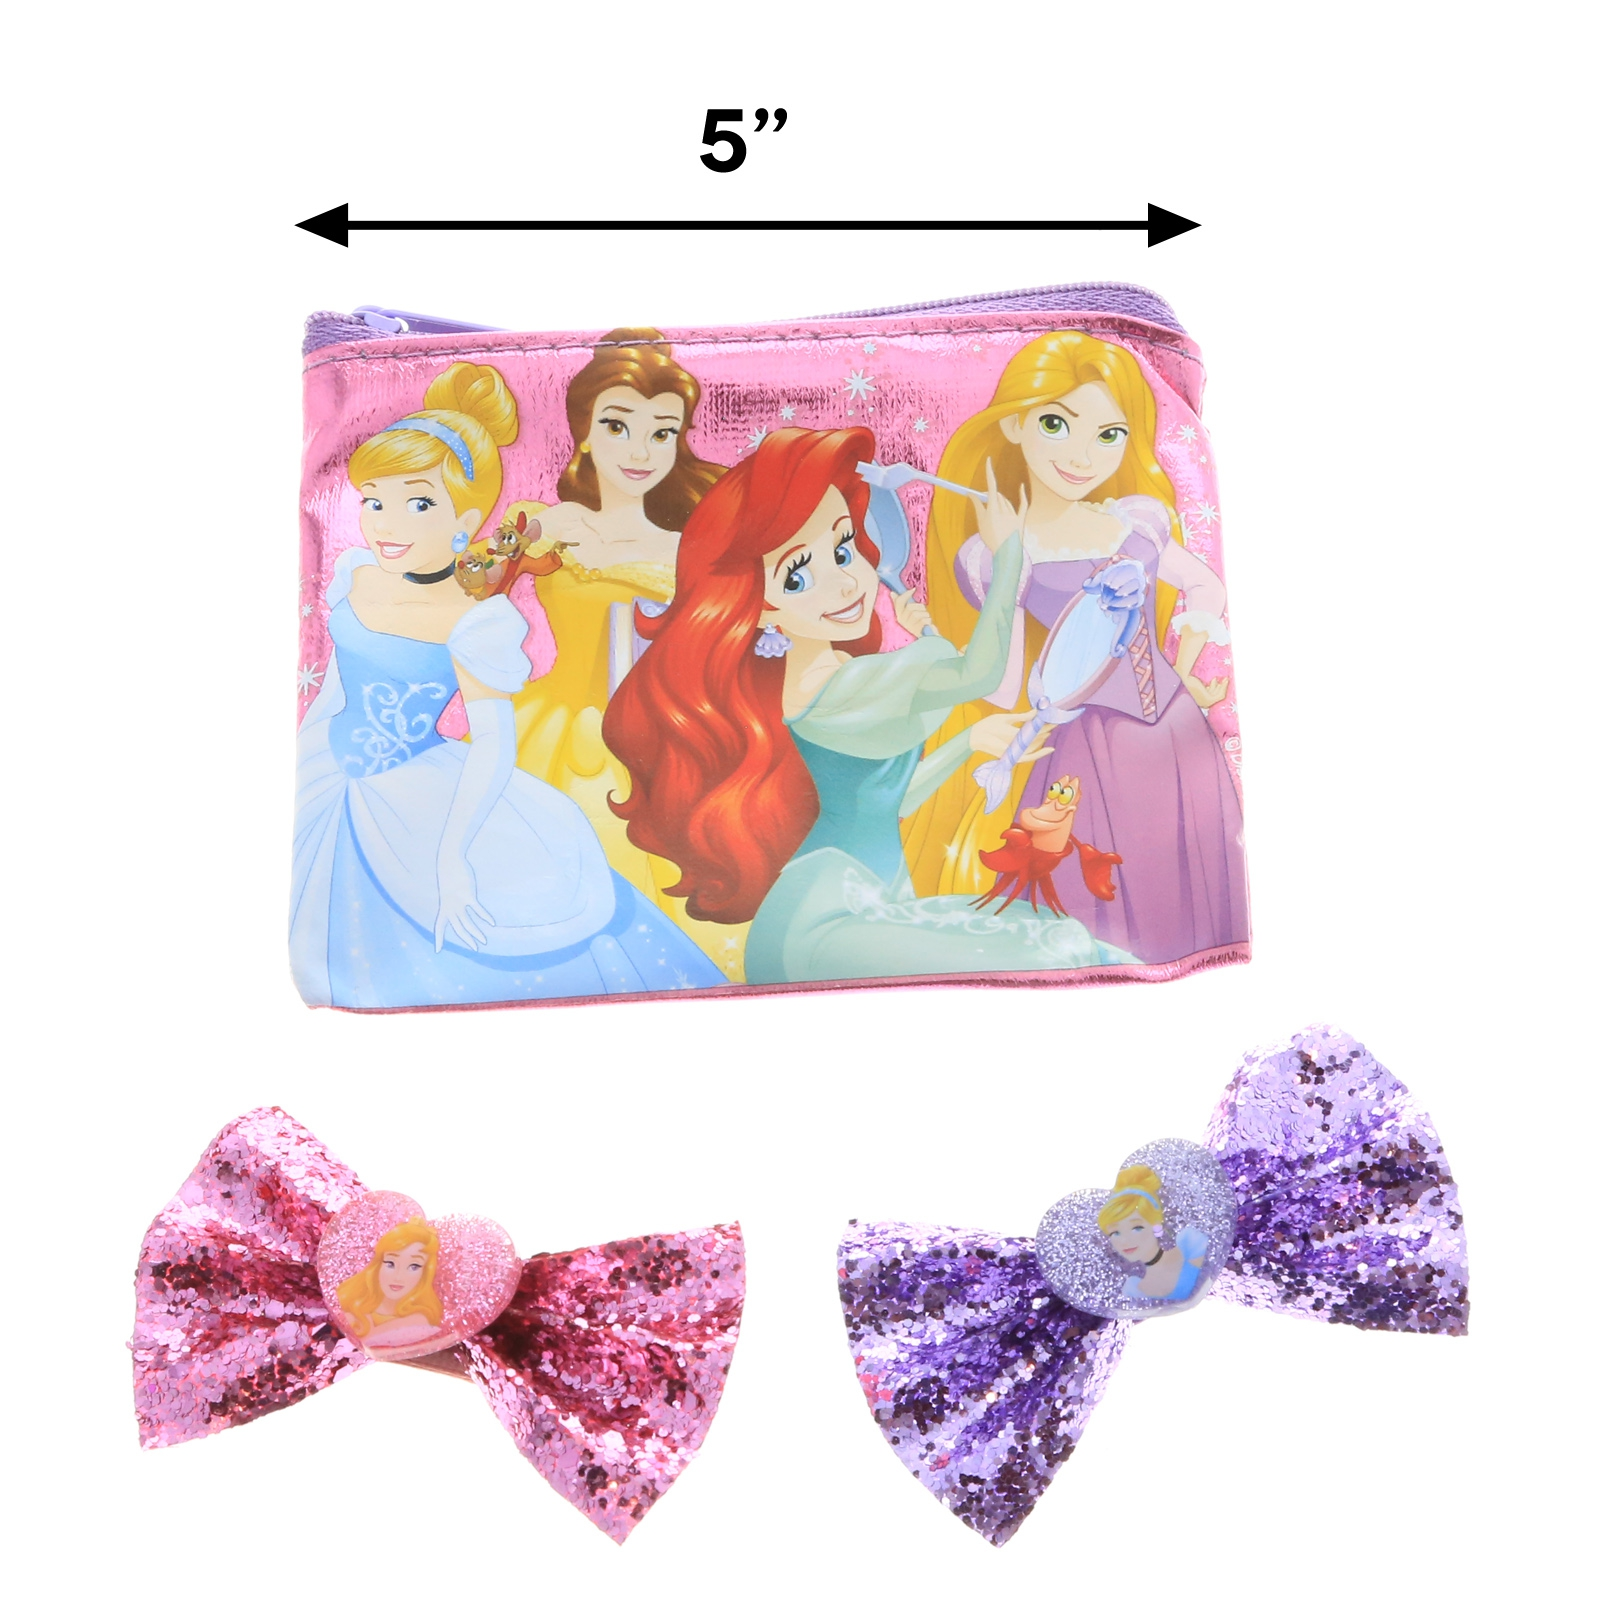 Disney Princess Girls Hair Clips Accessories Beauty Gift Set Cosmetics Makeup